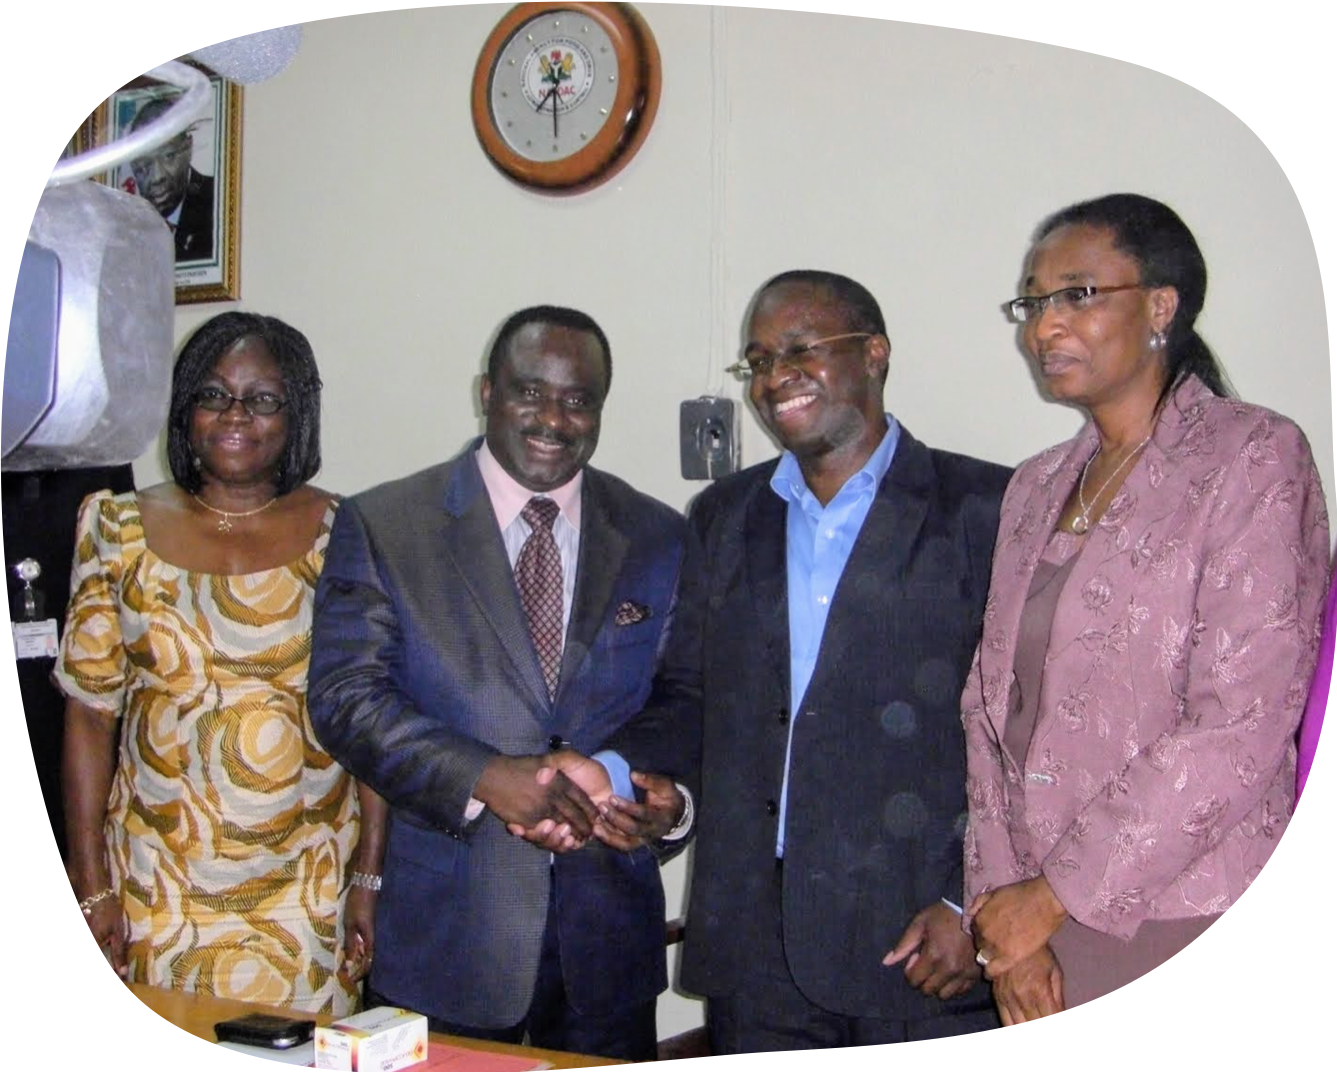 2010 NAFDAC Director General Dr. Paul Orhii (2nd from left) congratulates Sproxil CEO Dr. Ashifi Gogo (3rd from left) at the NAFDAC launch of the Mobile aAuthentication Service, alongside NAFDAC director Mrs. Keri (4th from left).